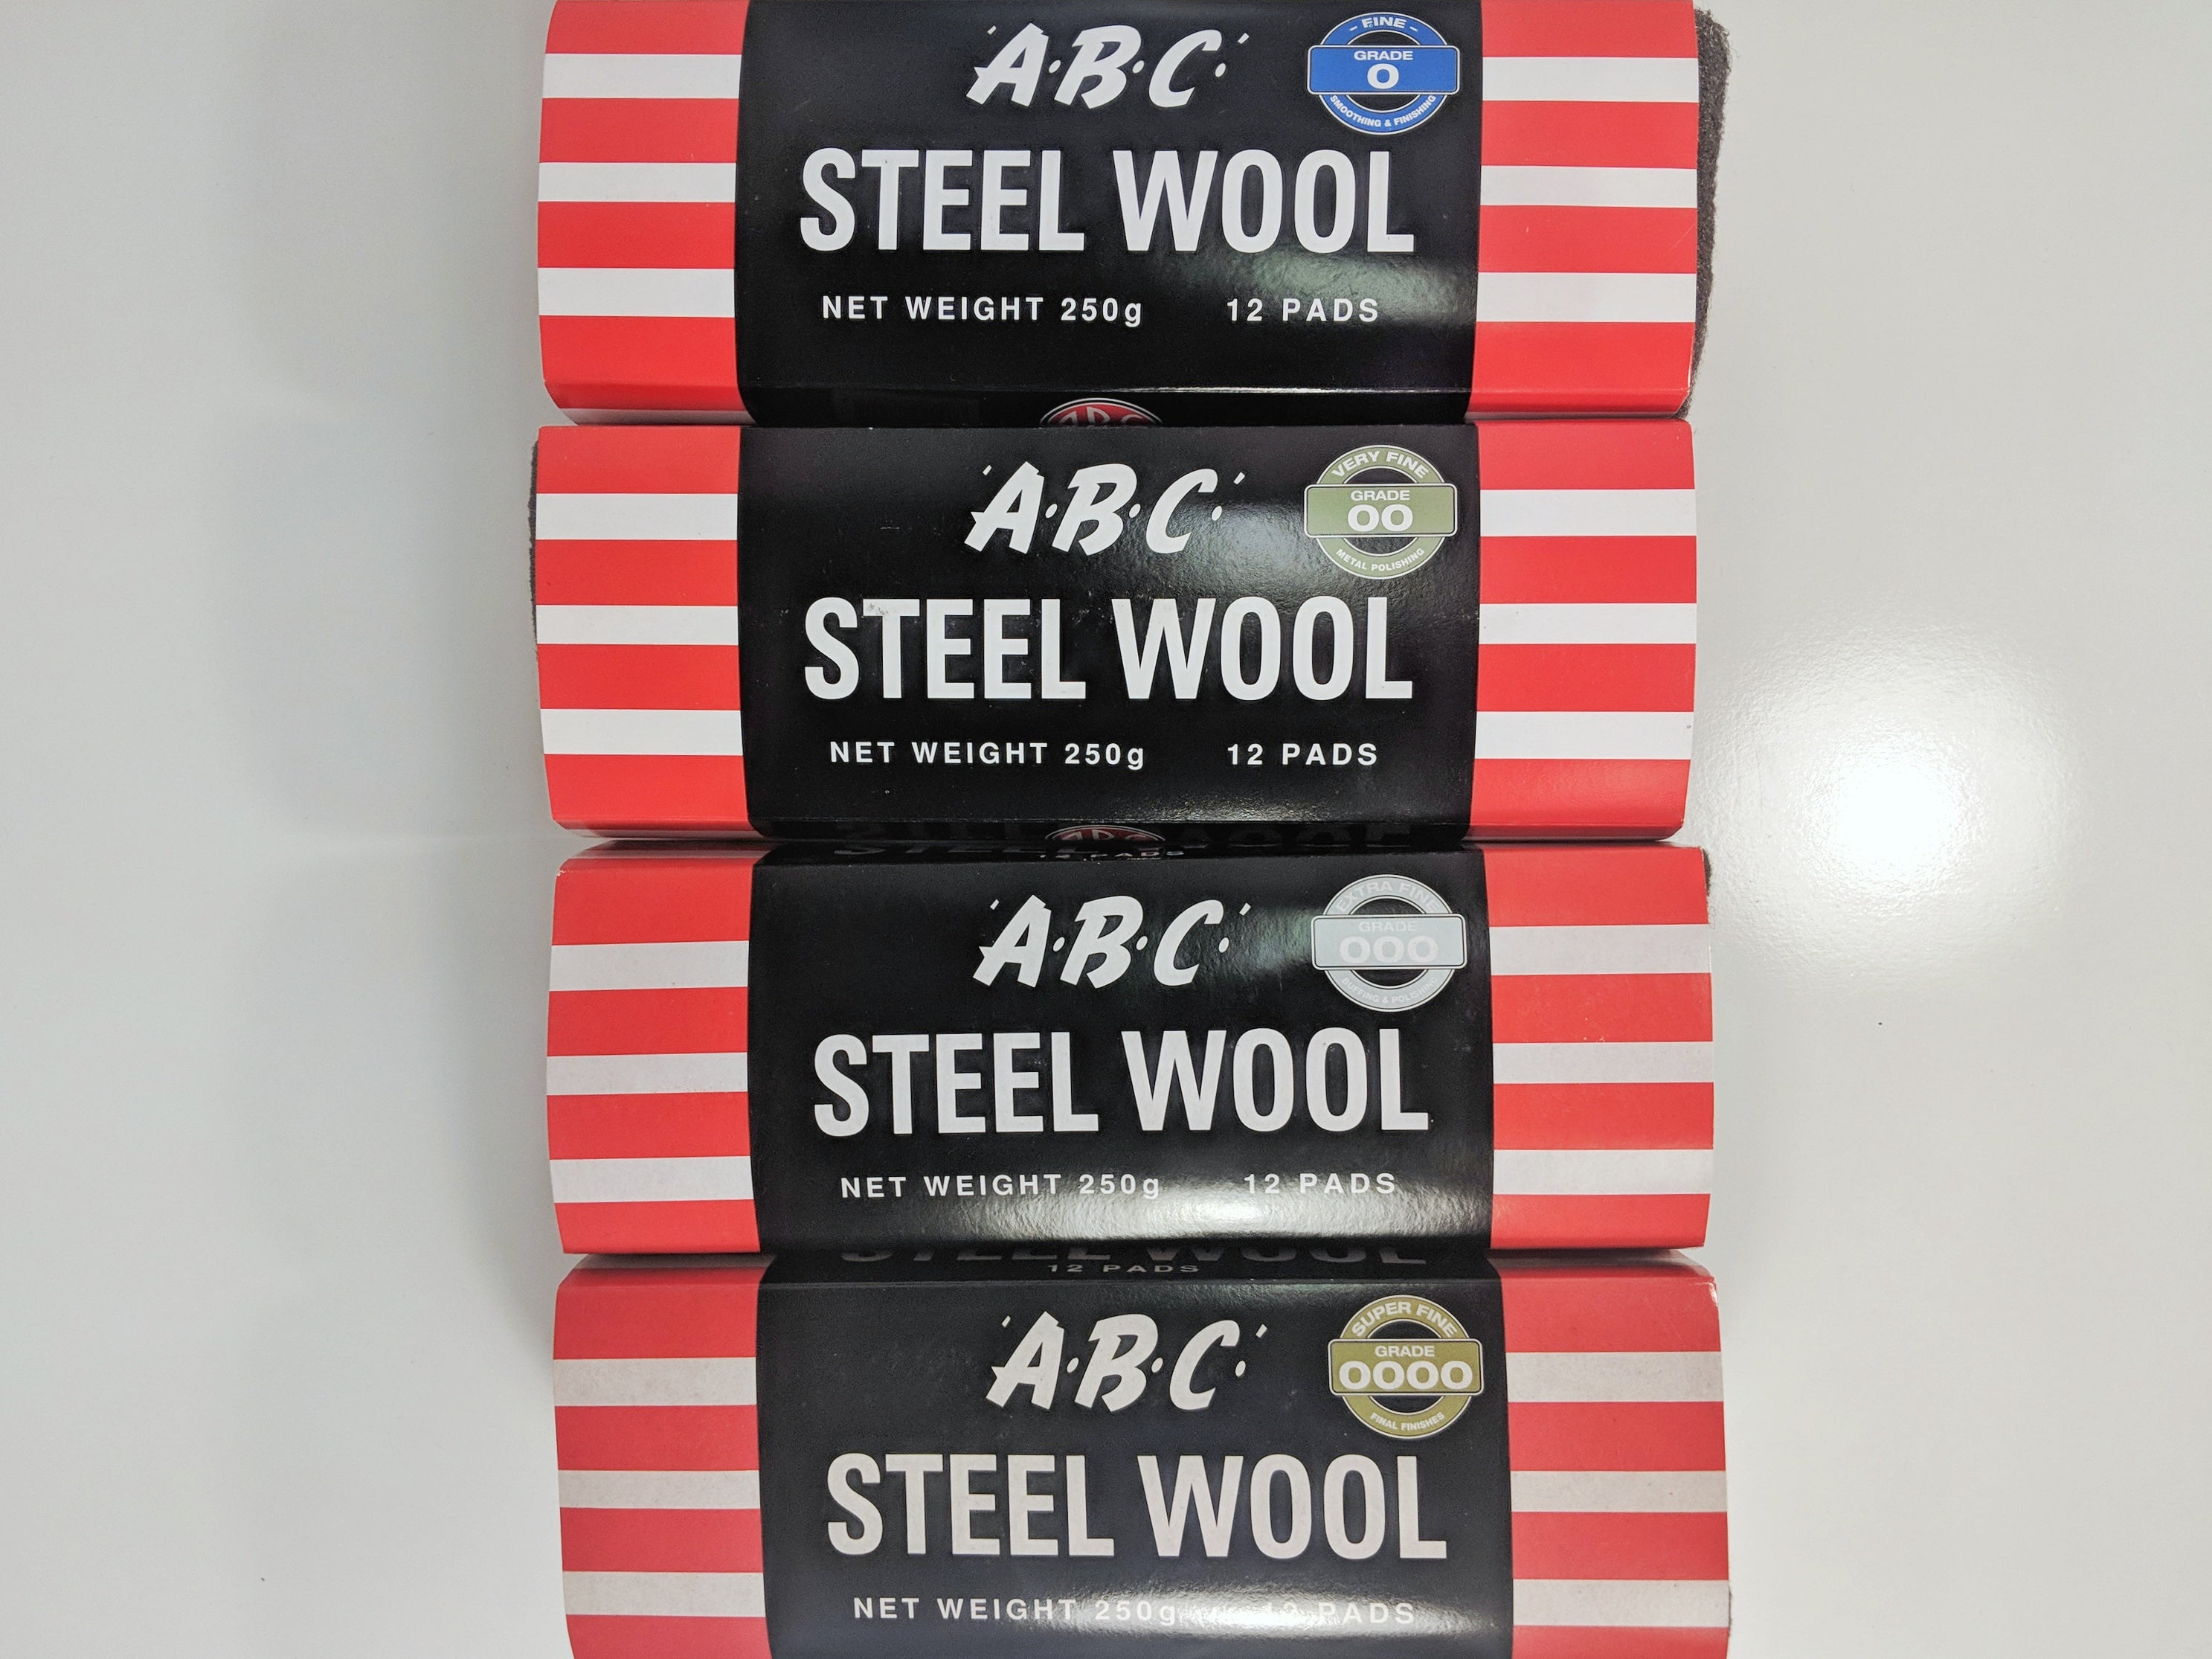 ABC Glass Rated Steel Wool 250g